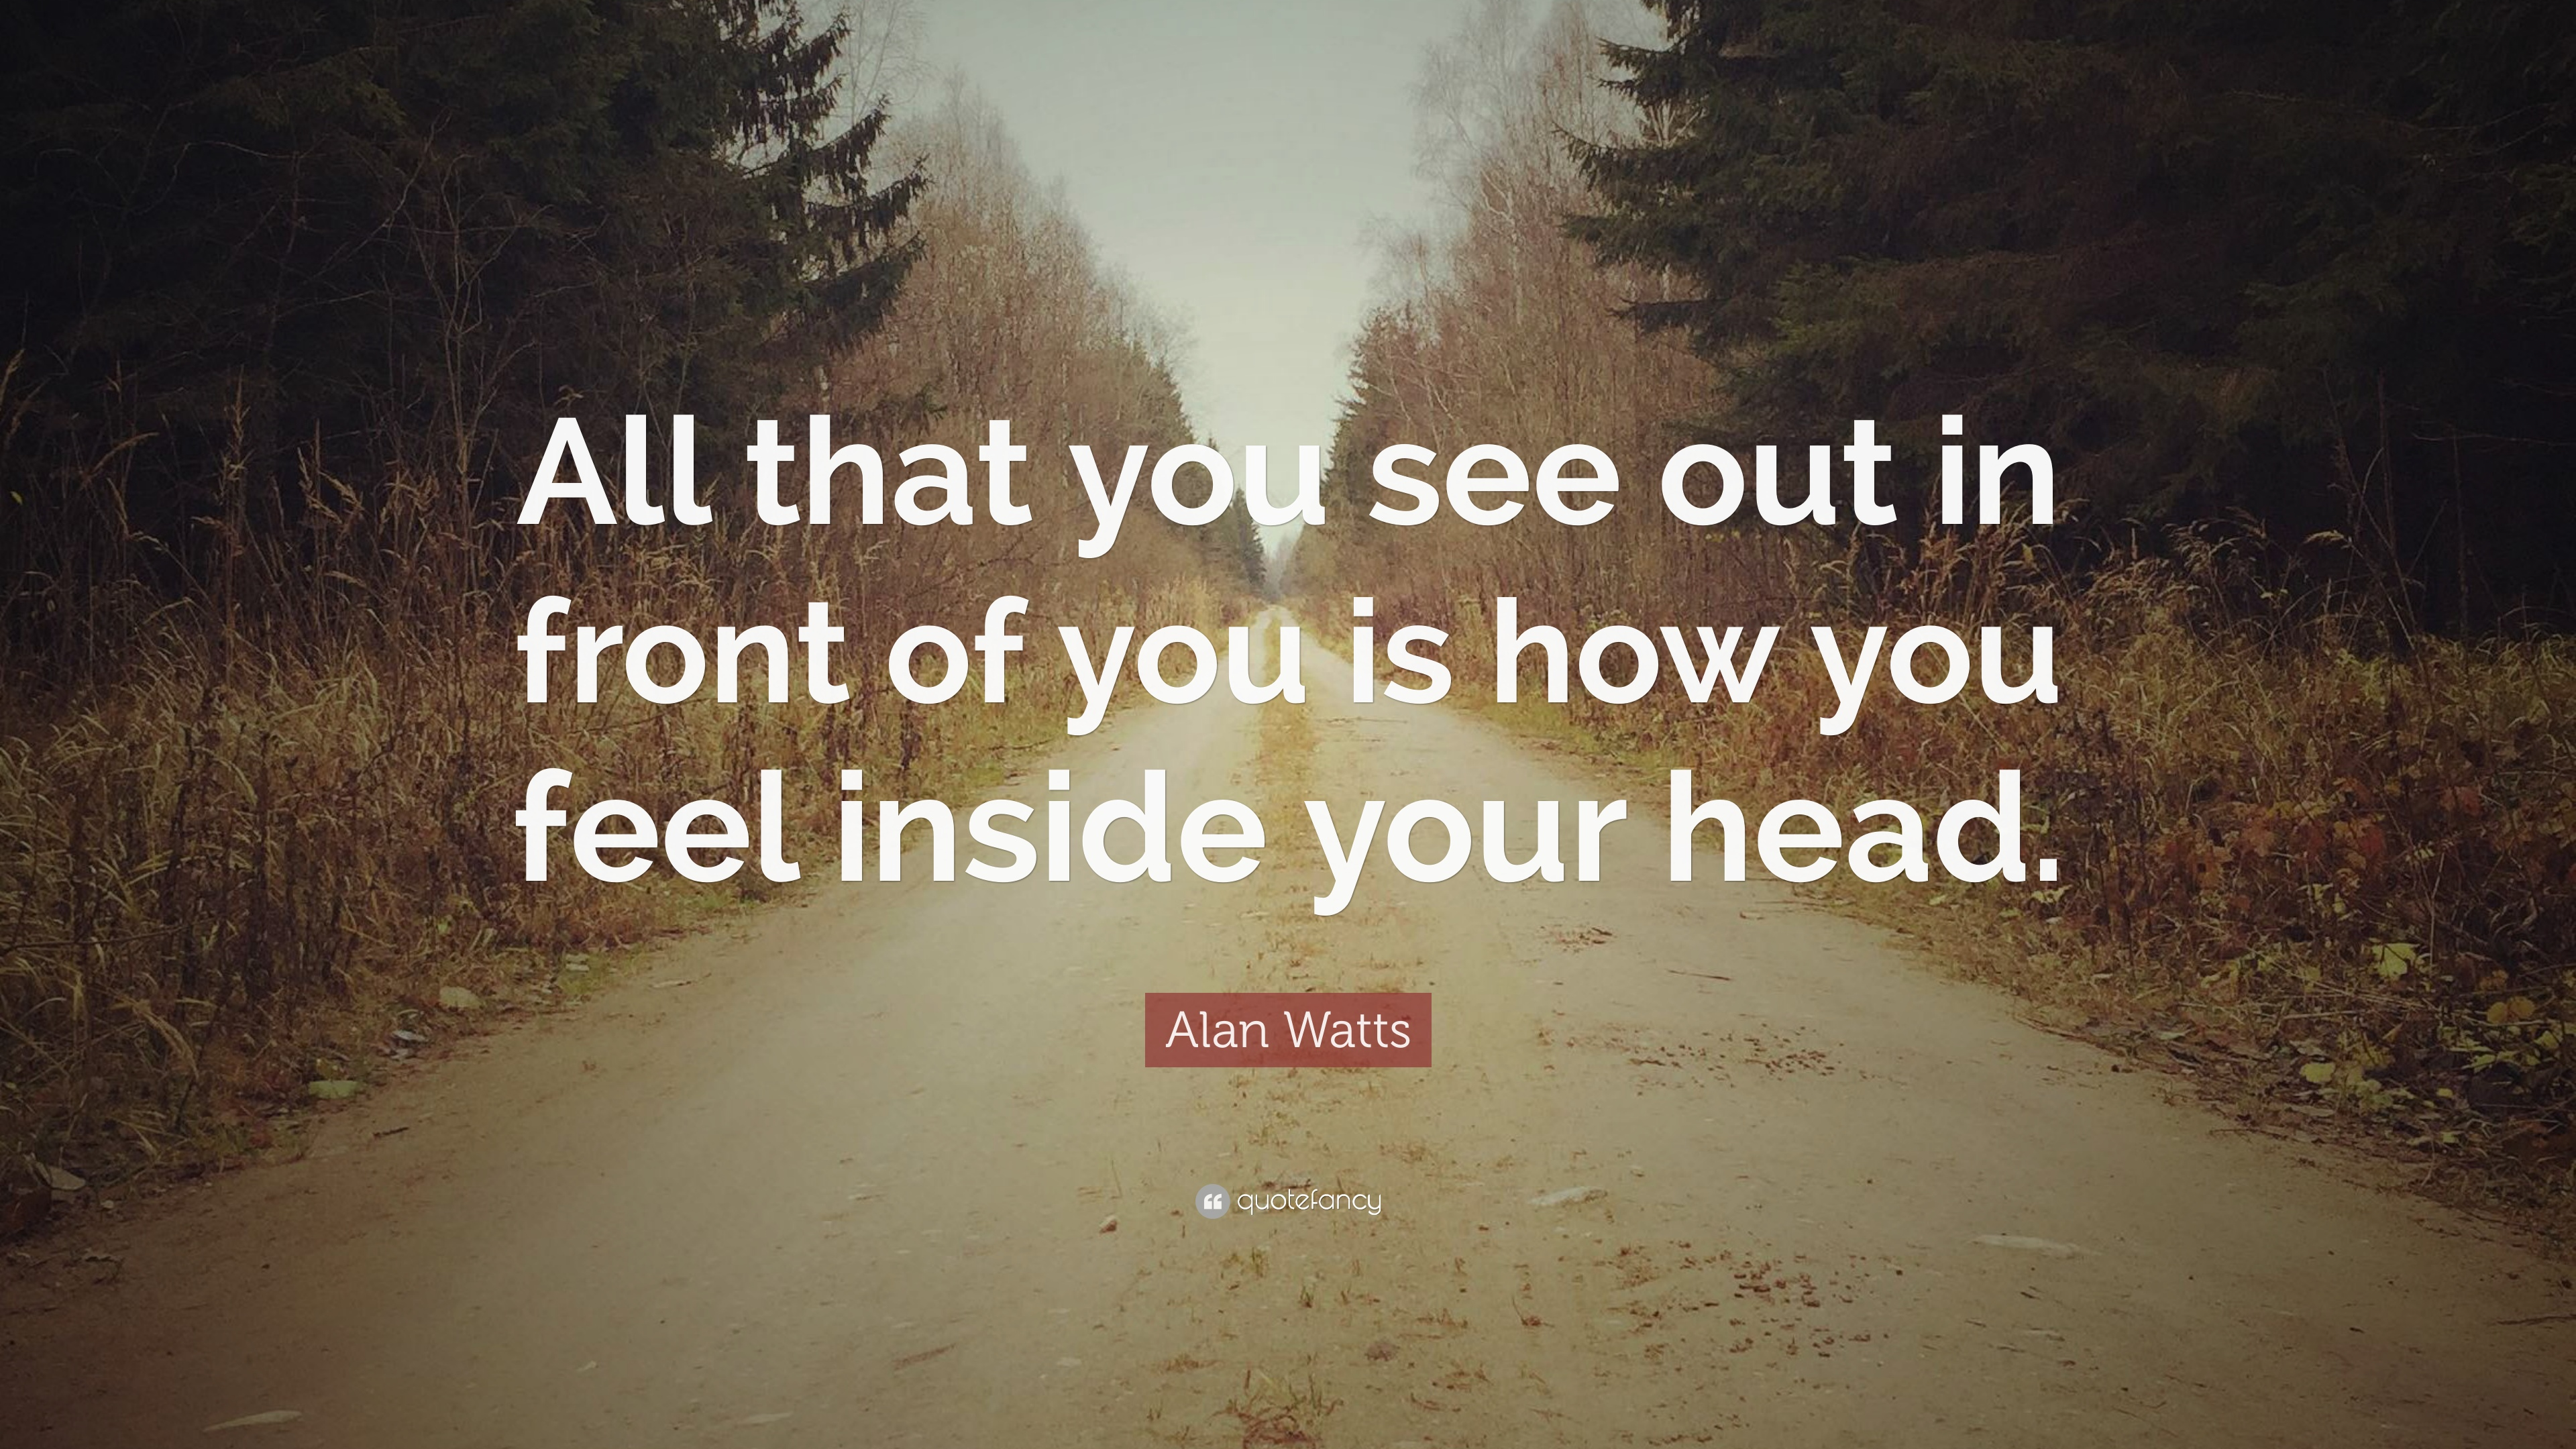 "Alan Watts Quotes Alan Watts Quote: ""All that you see out in front of you is how you  Alan Watts Quotes"